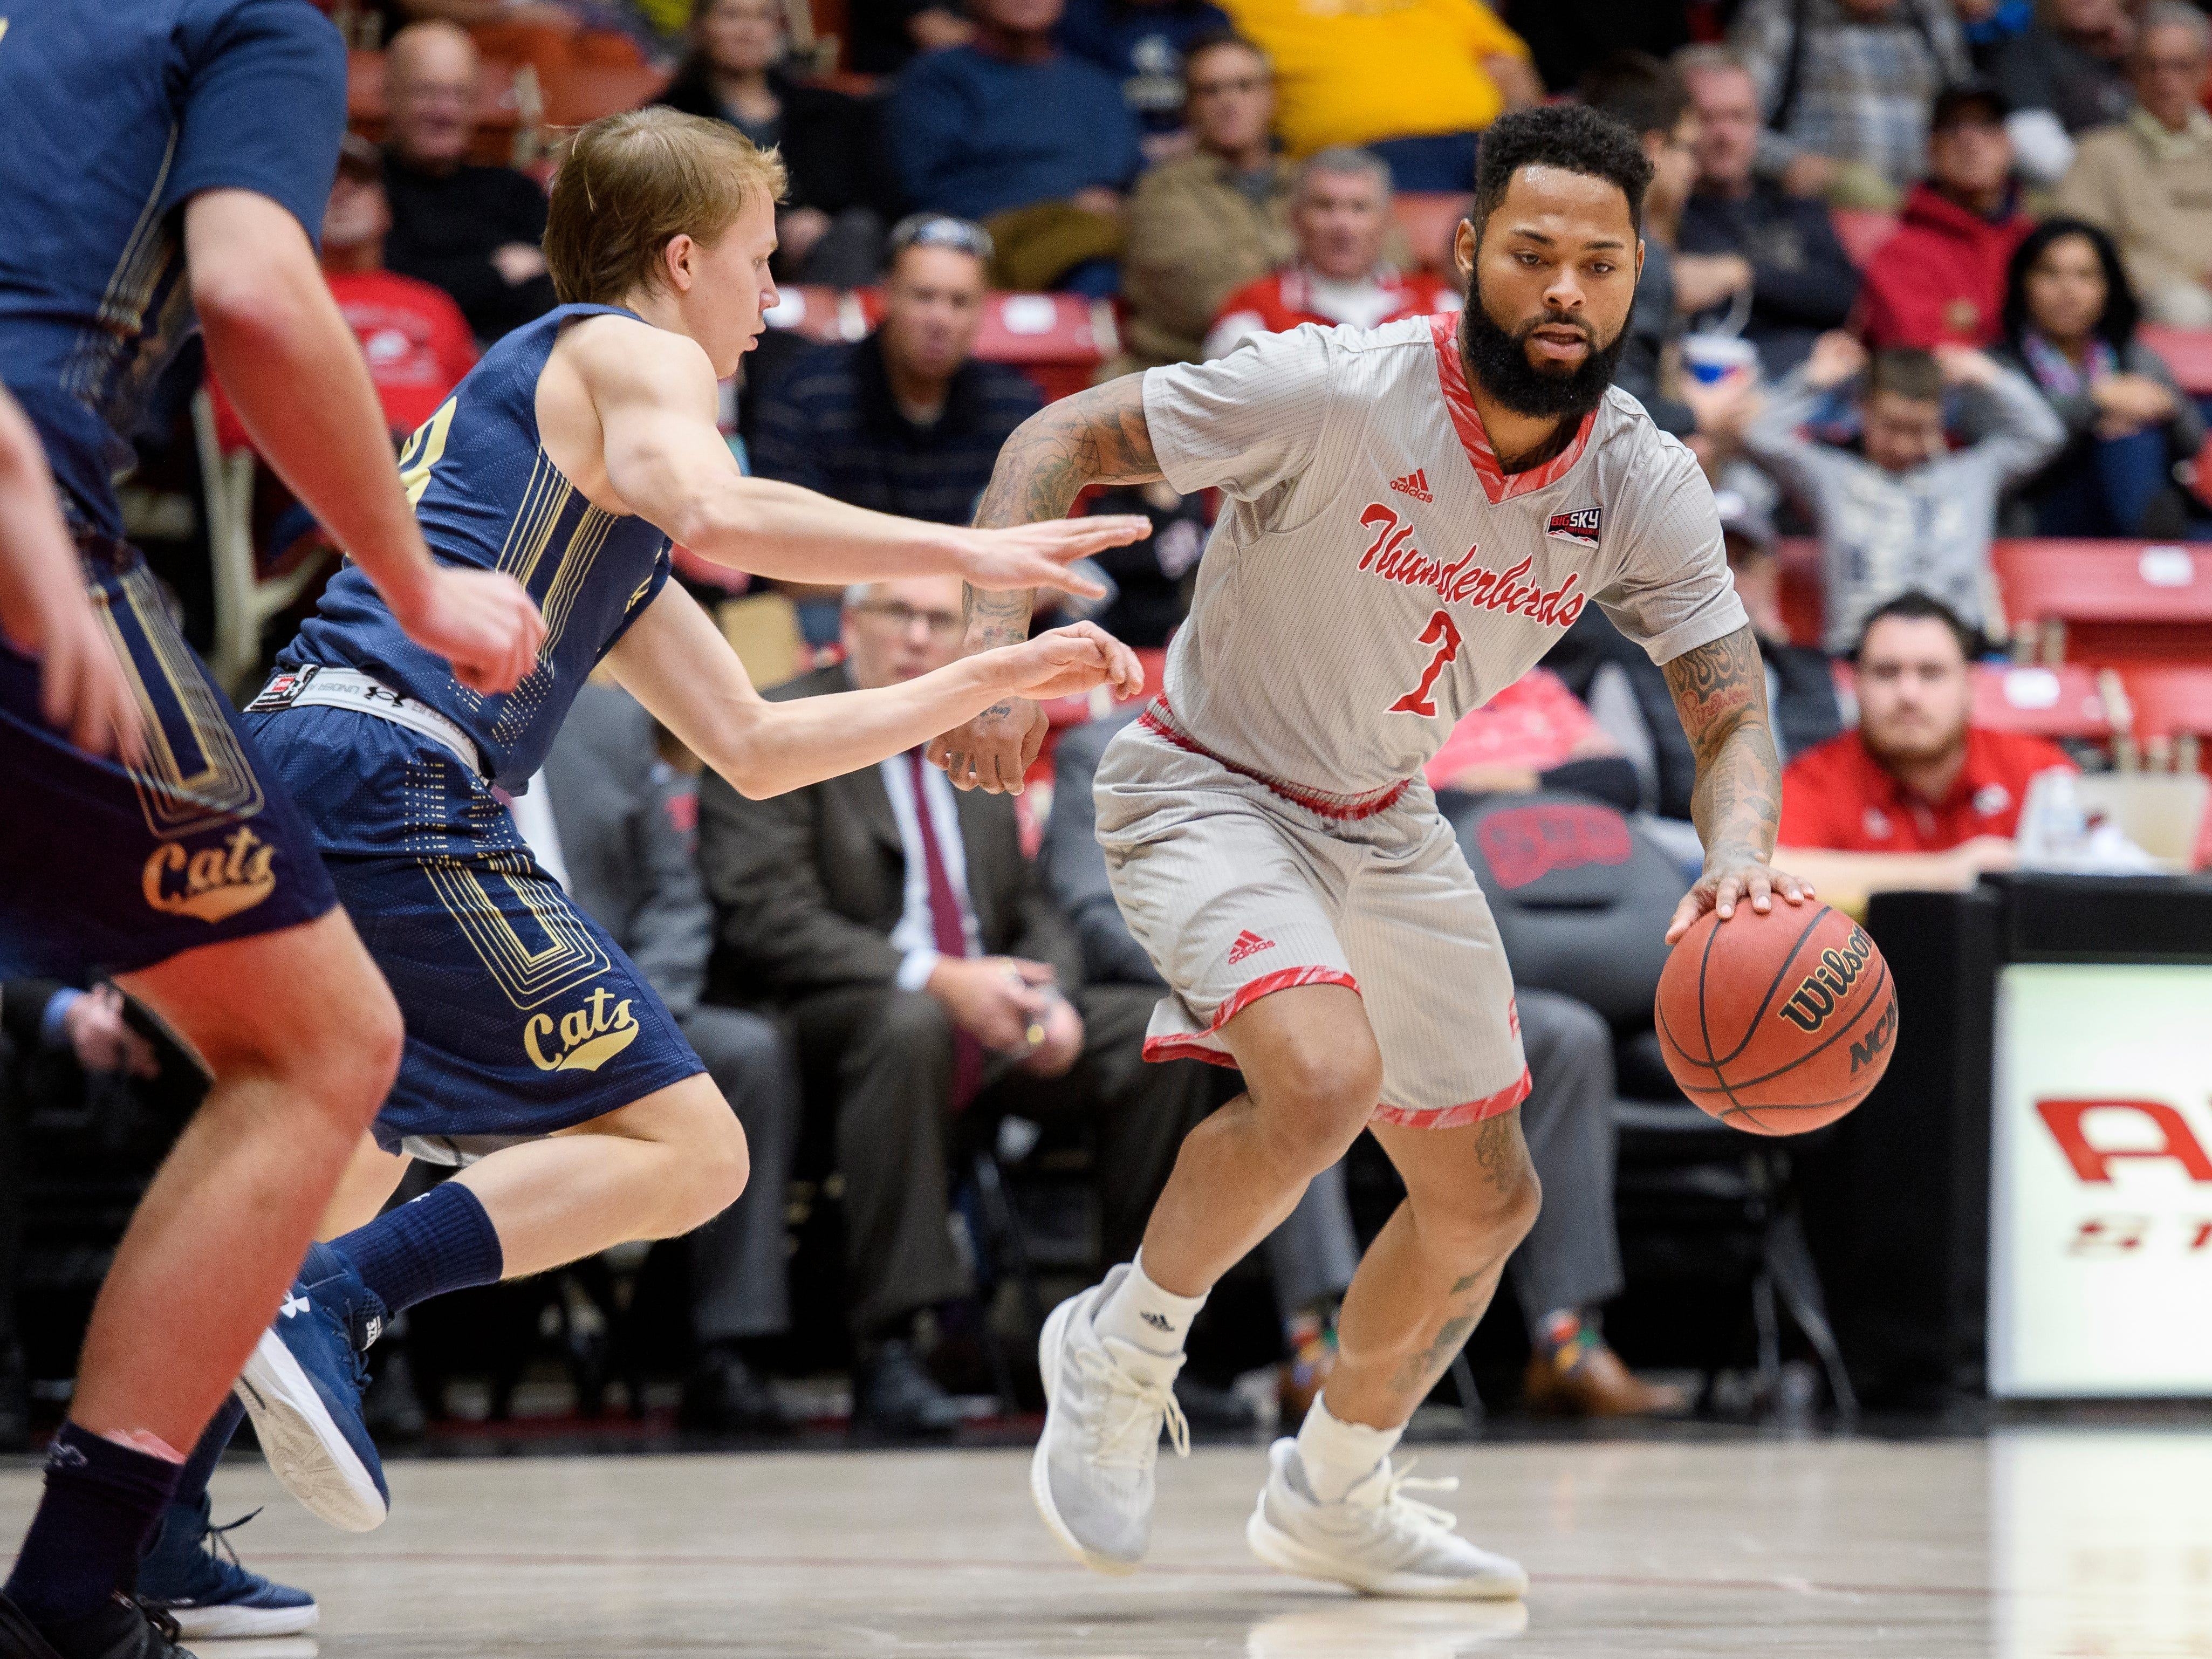 Southern Utah University senior Brandon Better (2) moves the ball against Montana State in the America First Event Center Saturday, December 29, 2018. SUU lost 92-62.